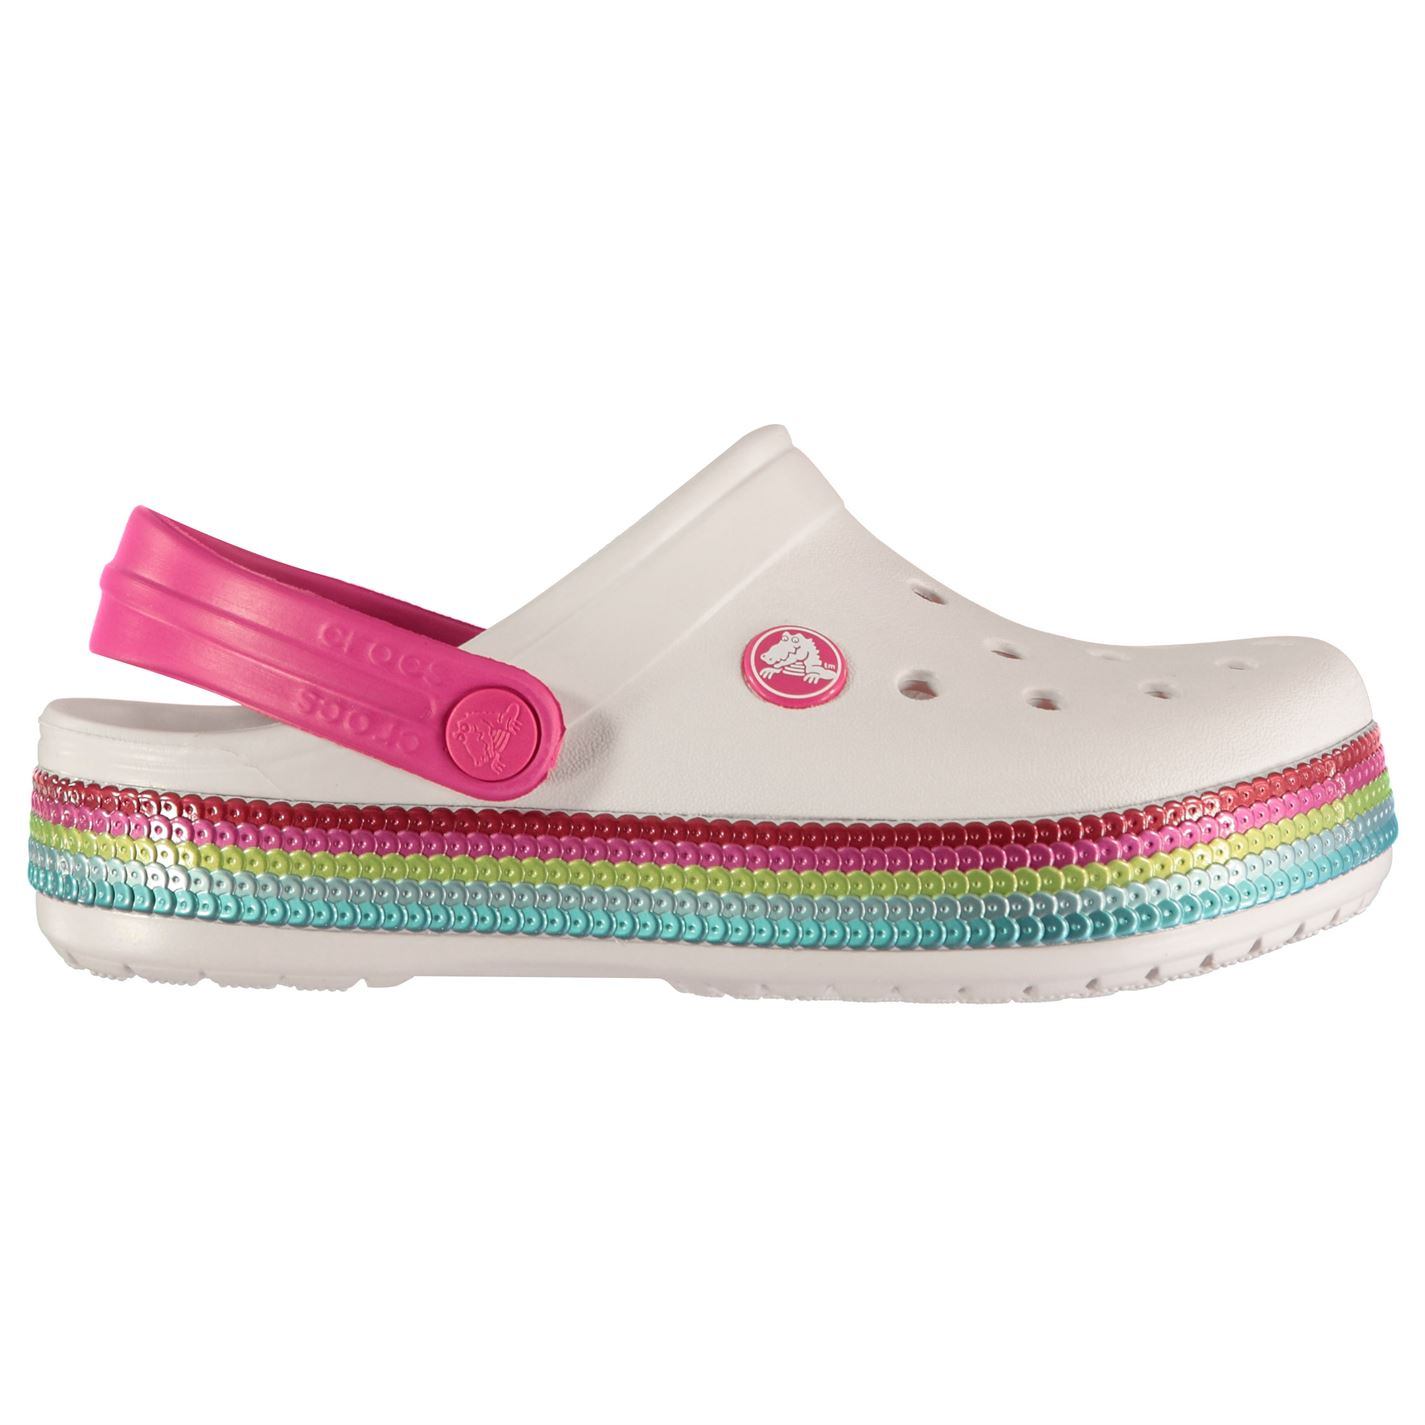 boty CROCS Sequin Band - BARELY PINK - 1 (33) J1